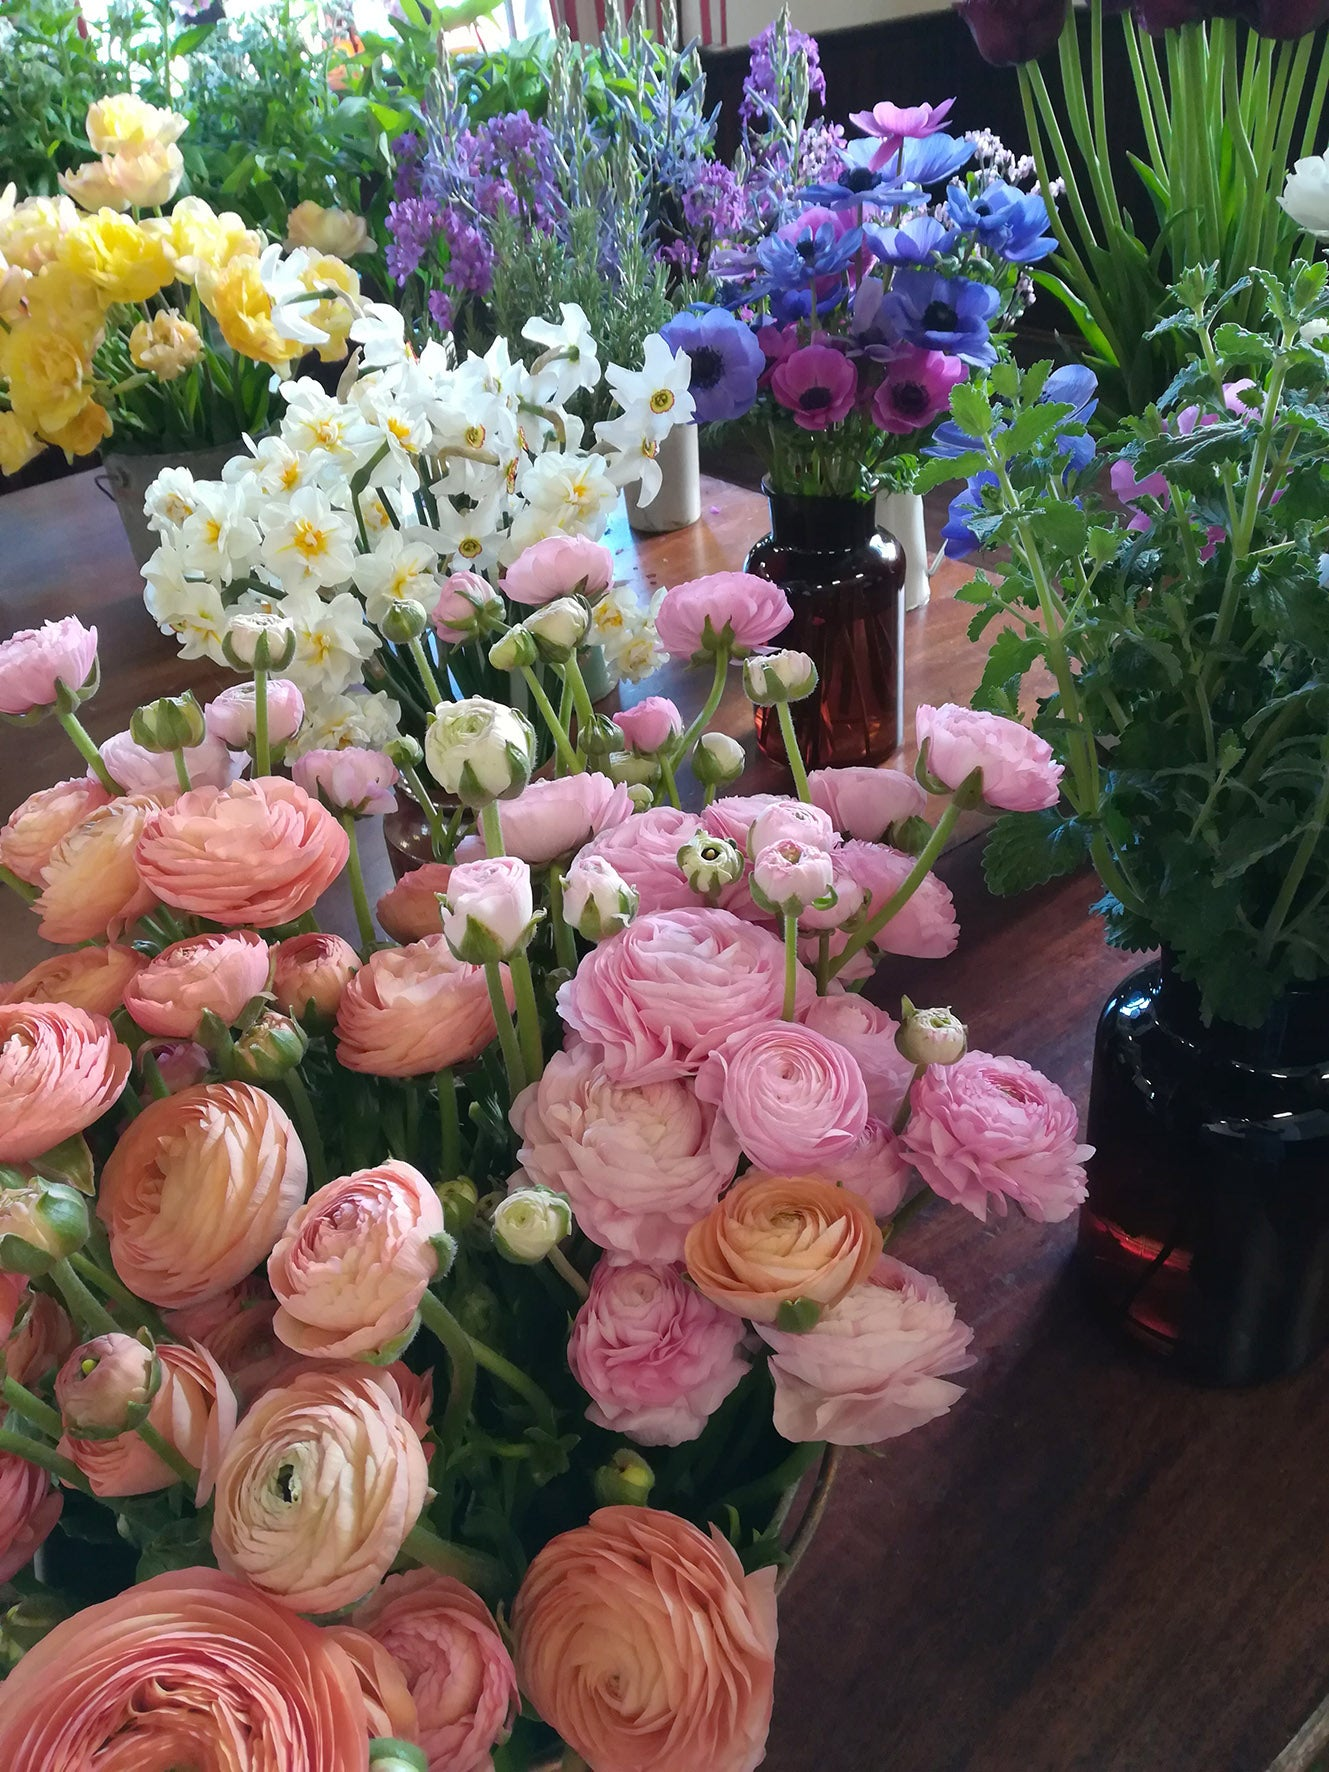 THE SUNDAY FLOWER SCHOOL  - 3RD JUNE (AFTERNOON)